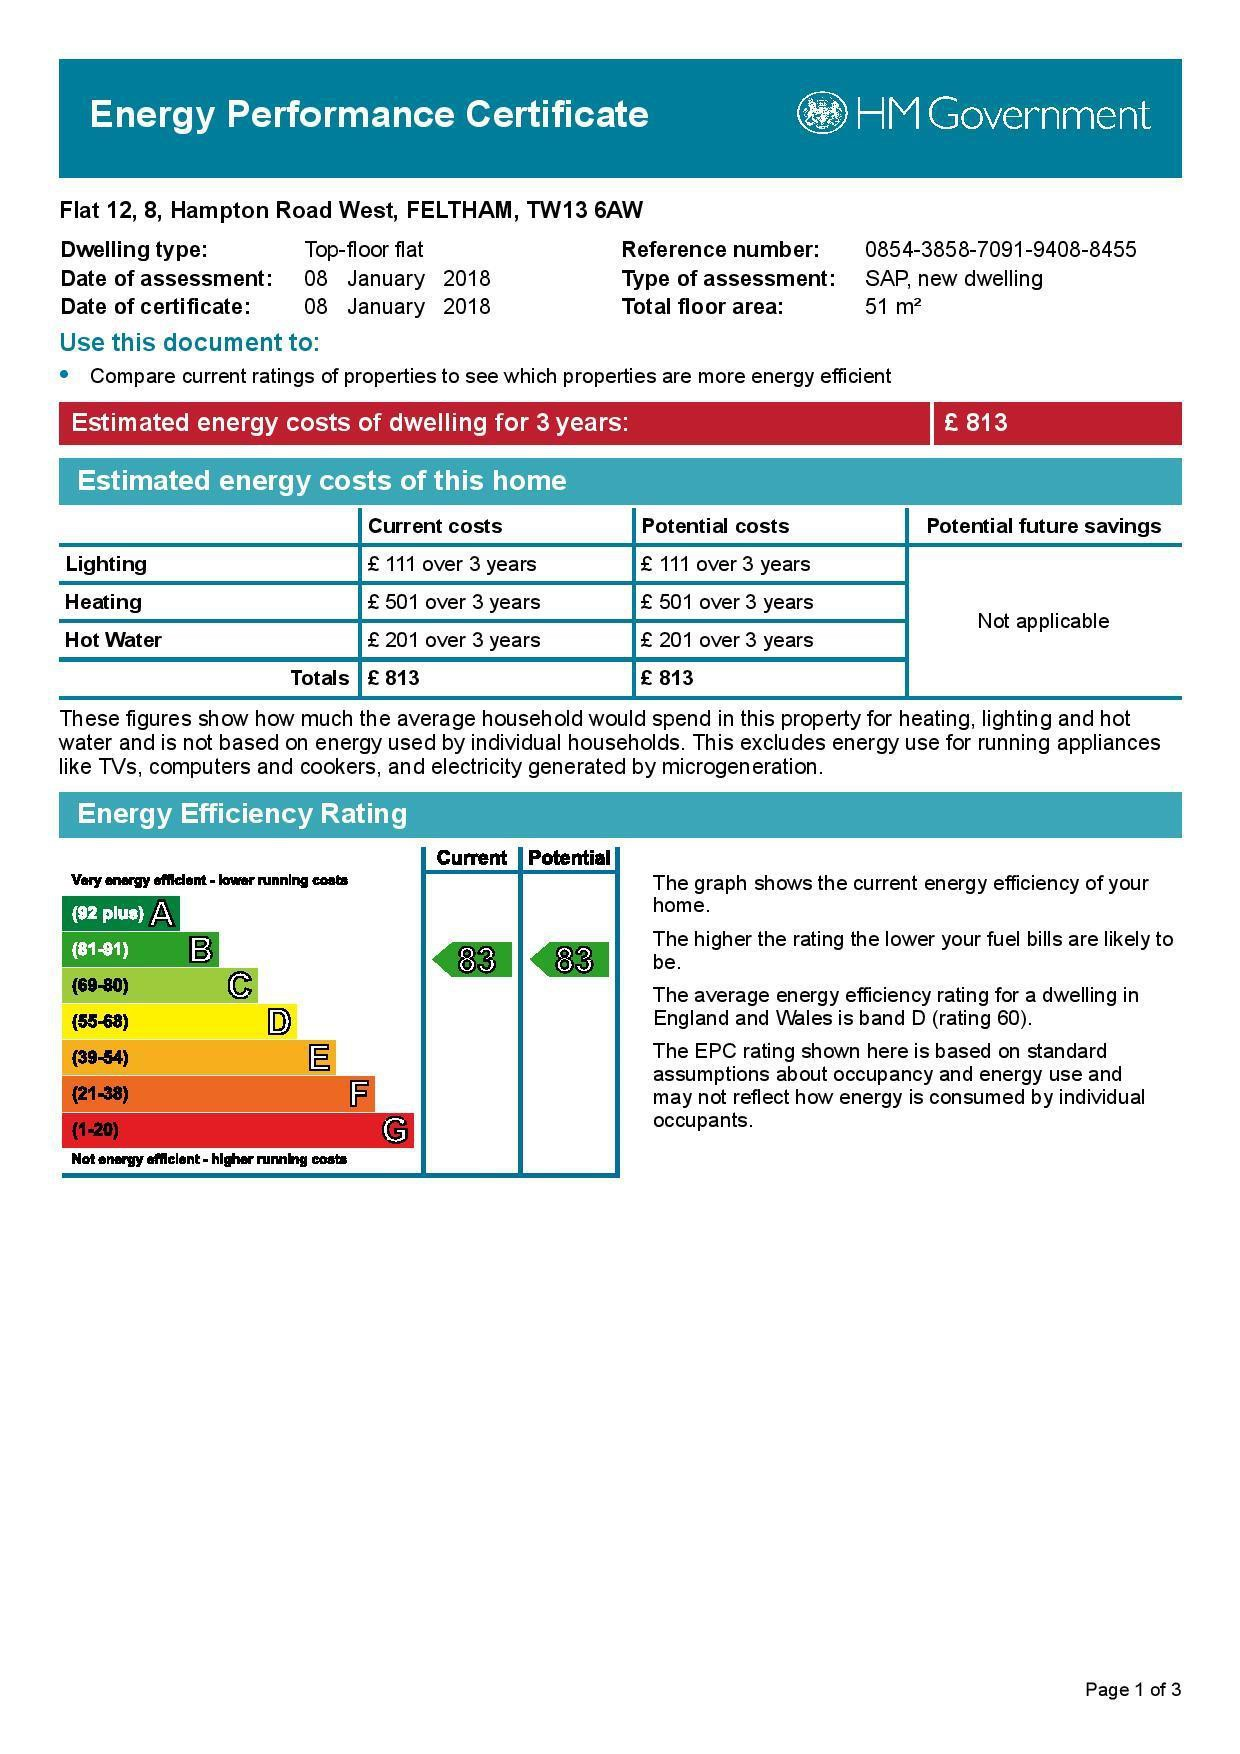 EPC Graph for Flat 12, 8 Hampton Road West, Feltham, Middlesex TW13 6AW